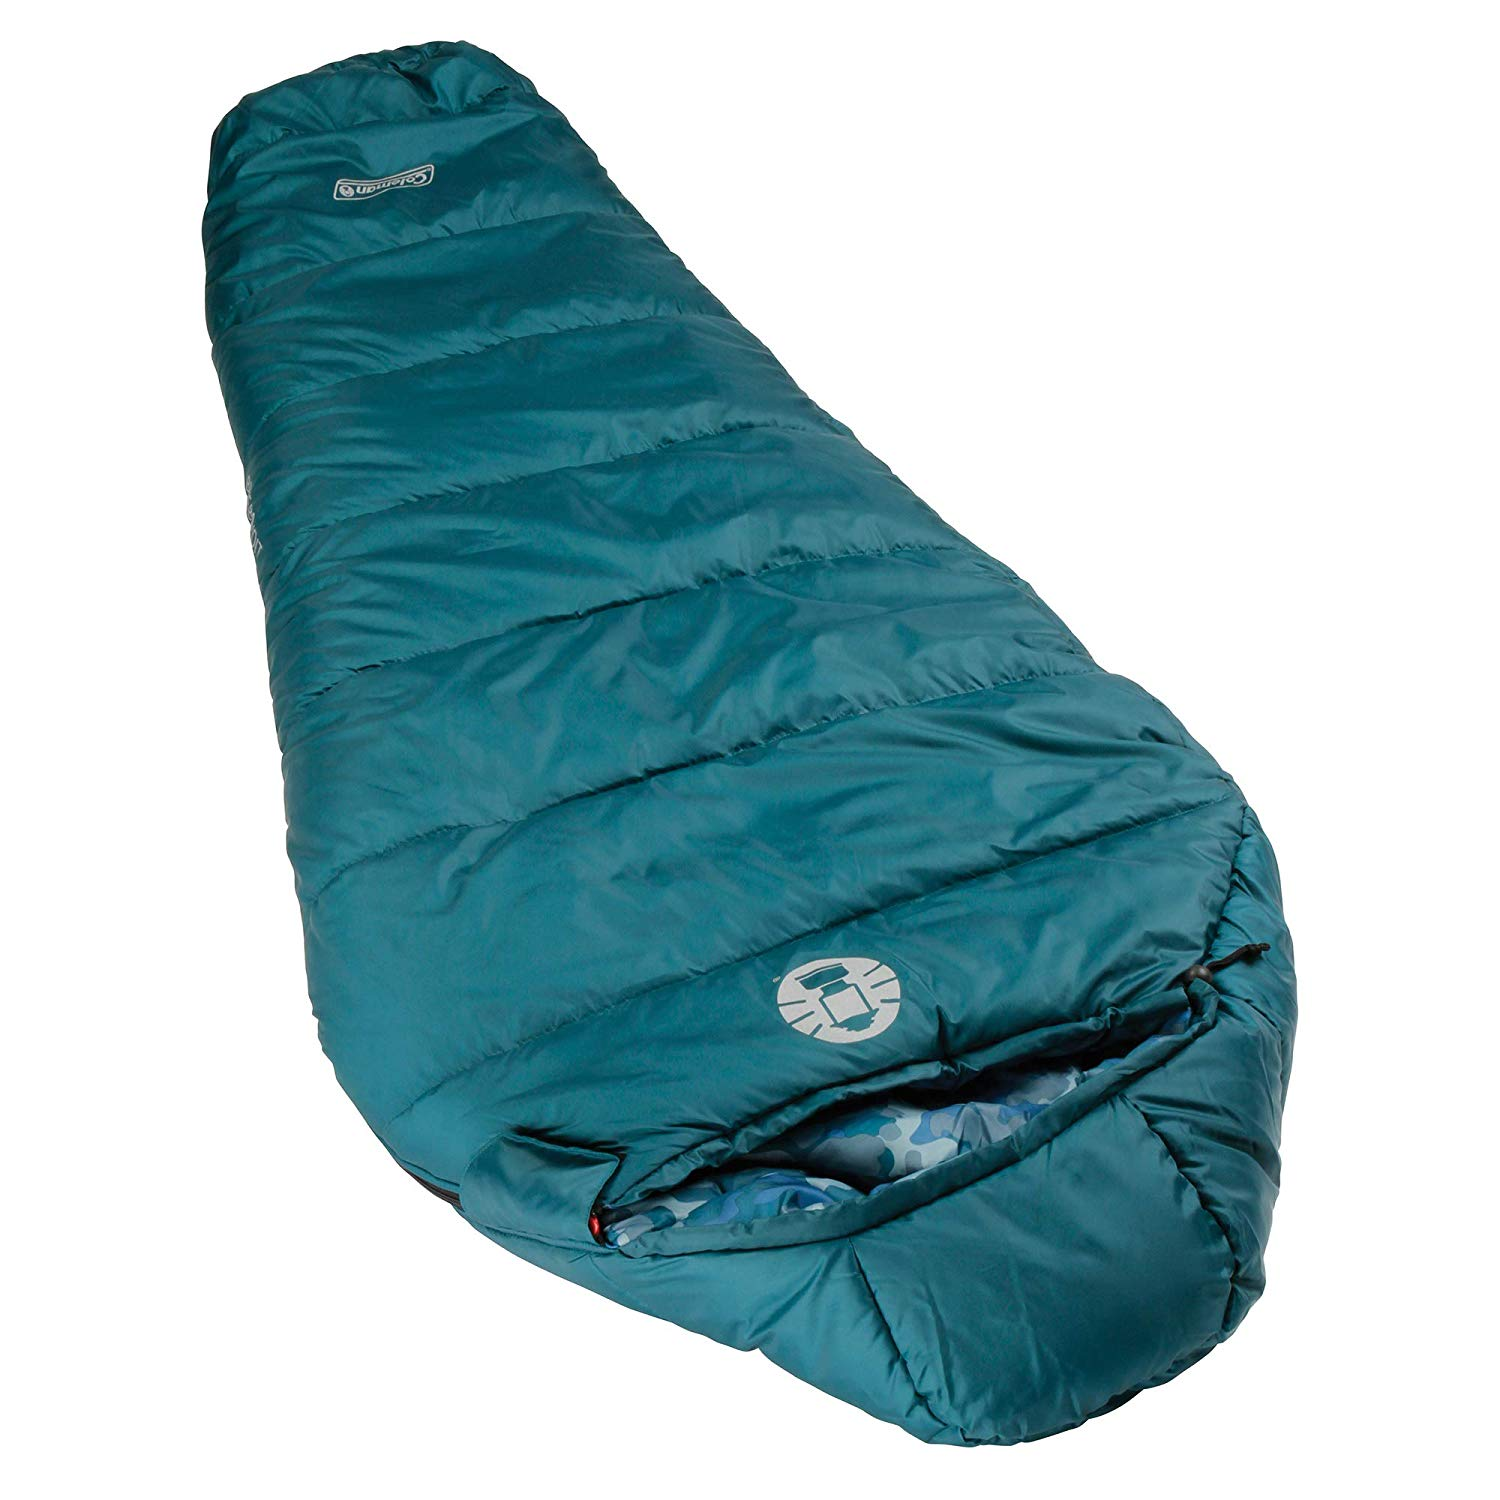 An image of Coleman 2000019649 Kids 30 Degree Polyester Sleeping Bag